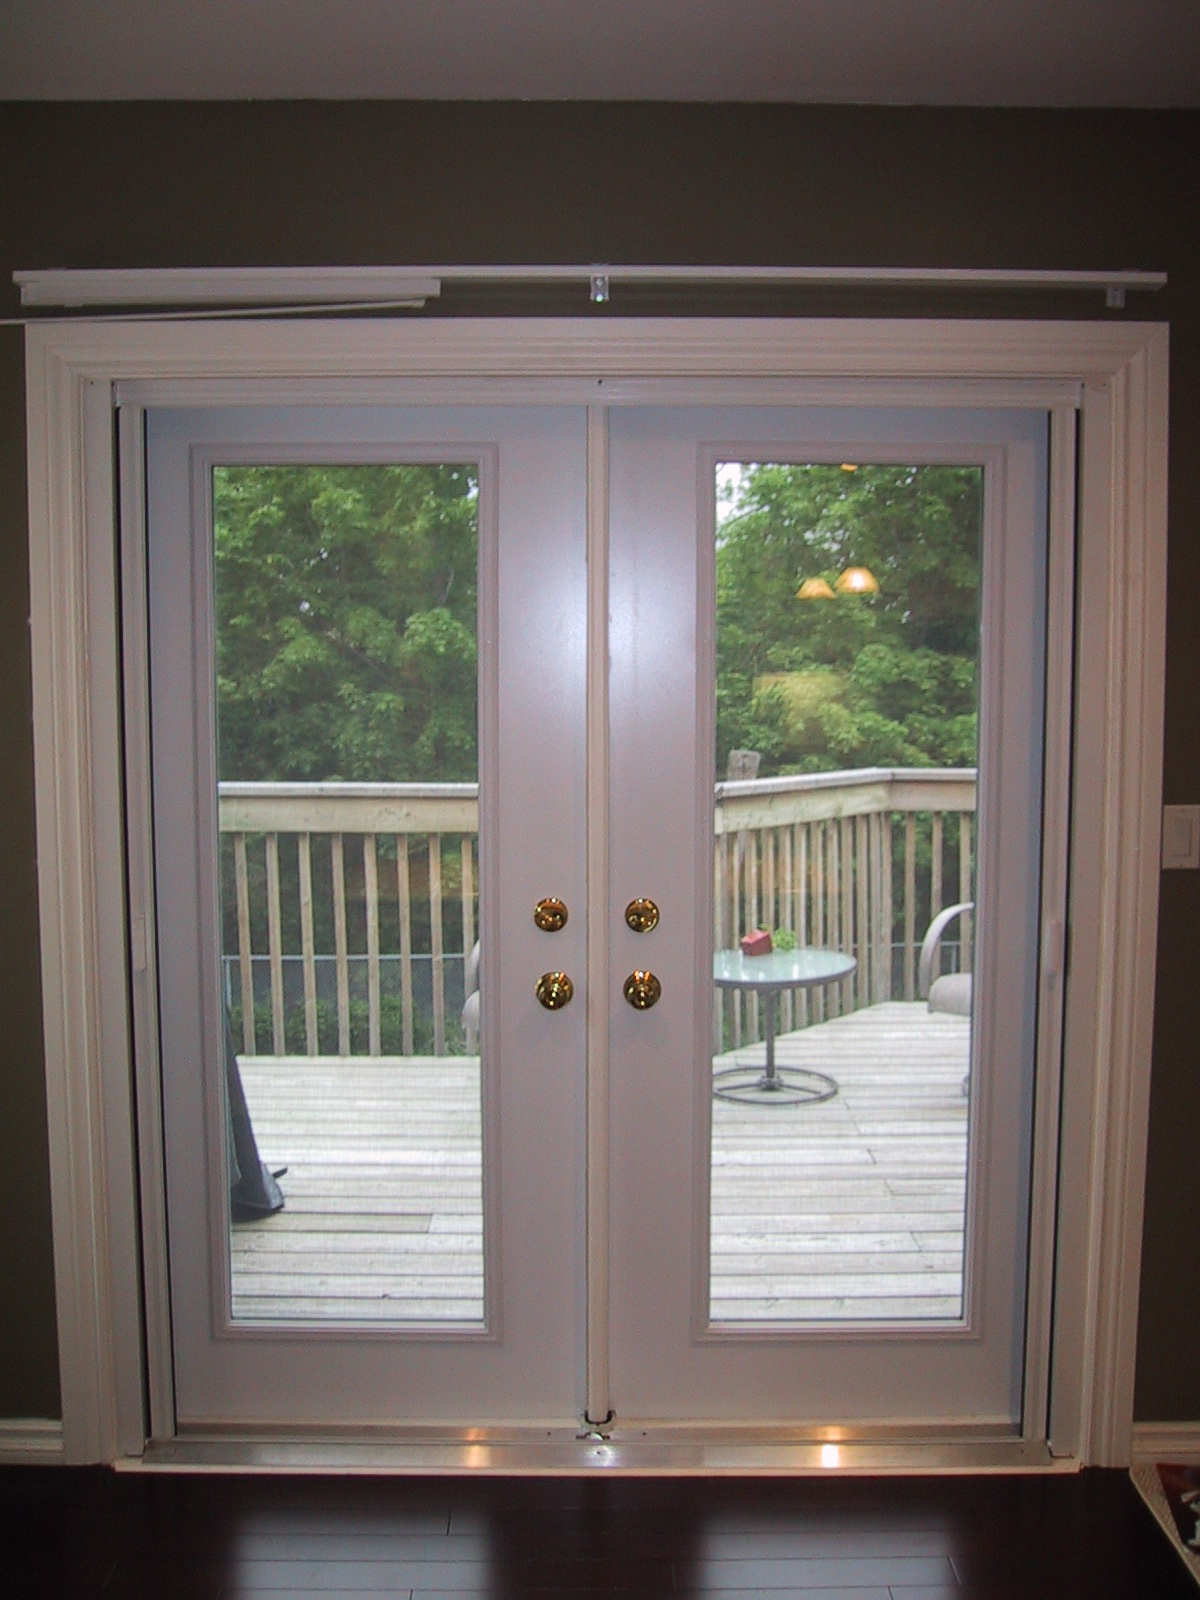 glass Retractable Screen doors with golden handle